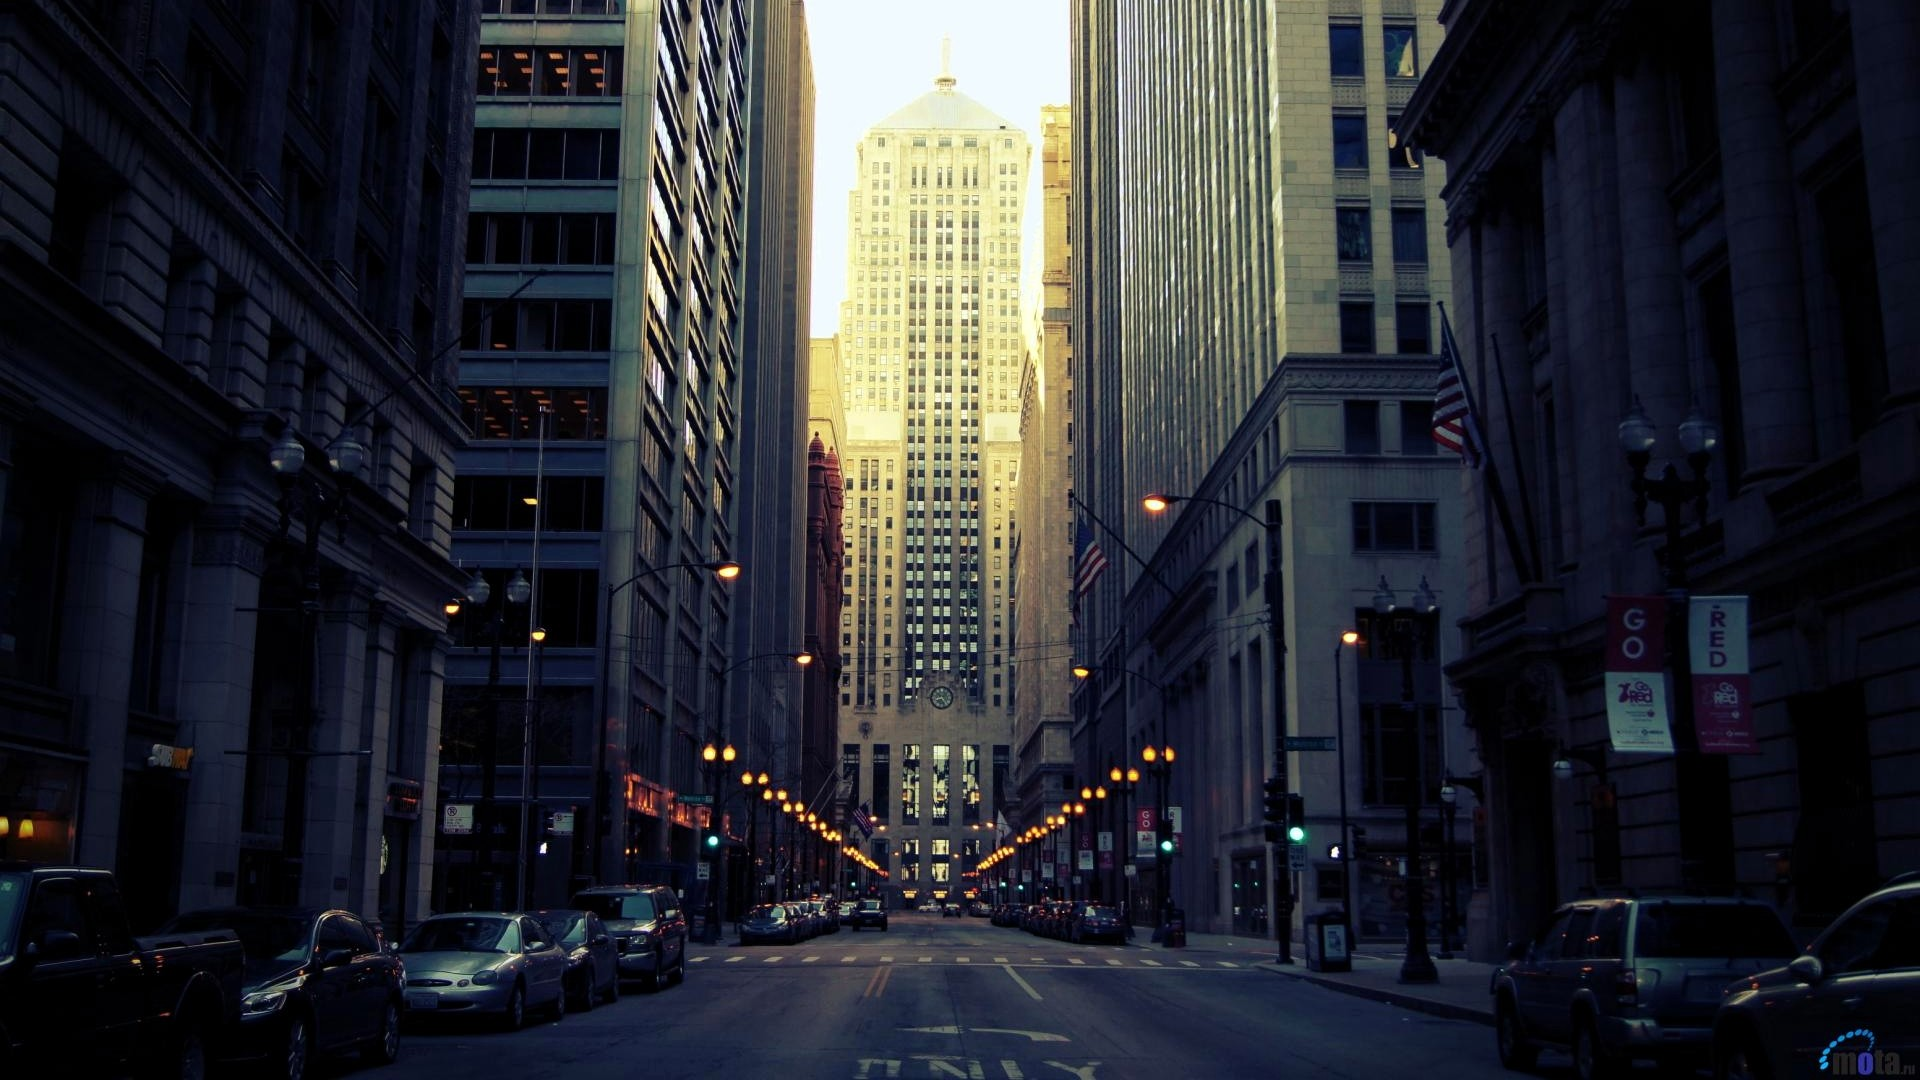 chicago-board-of-trade-building-cities-street-lights-wallpaper-wallbasecc-139117155084gkn